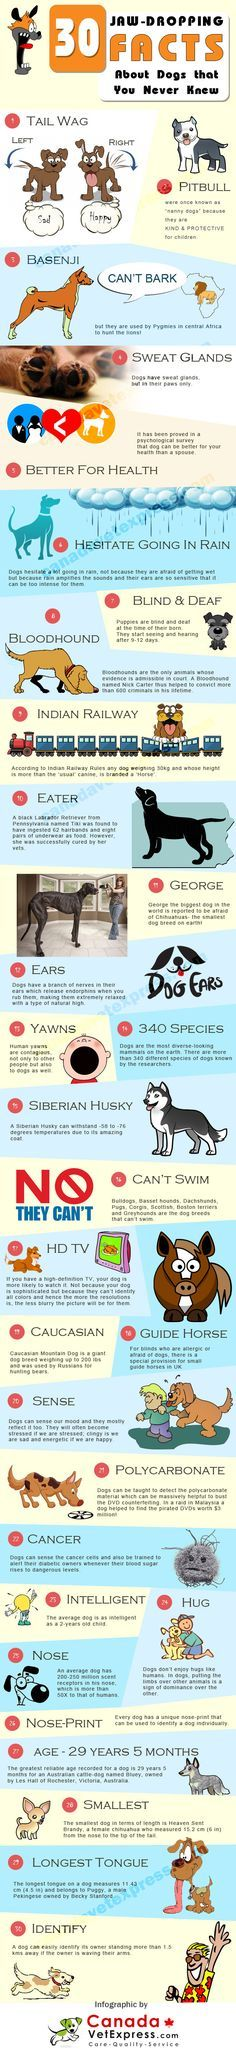 30 Fun Facts About Dogs | Animal Bliss